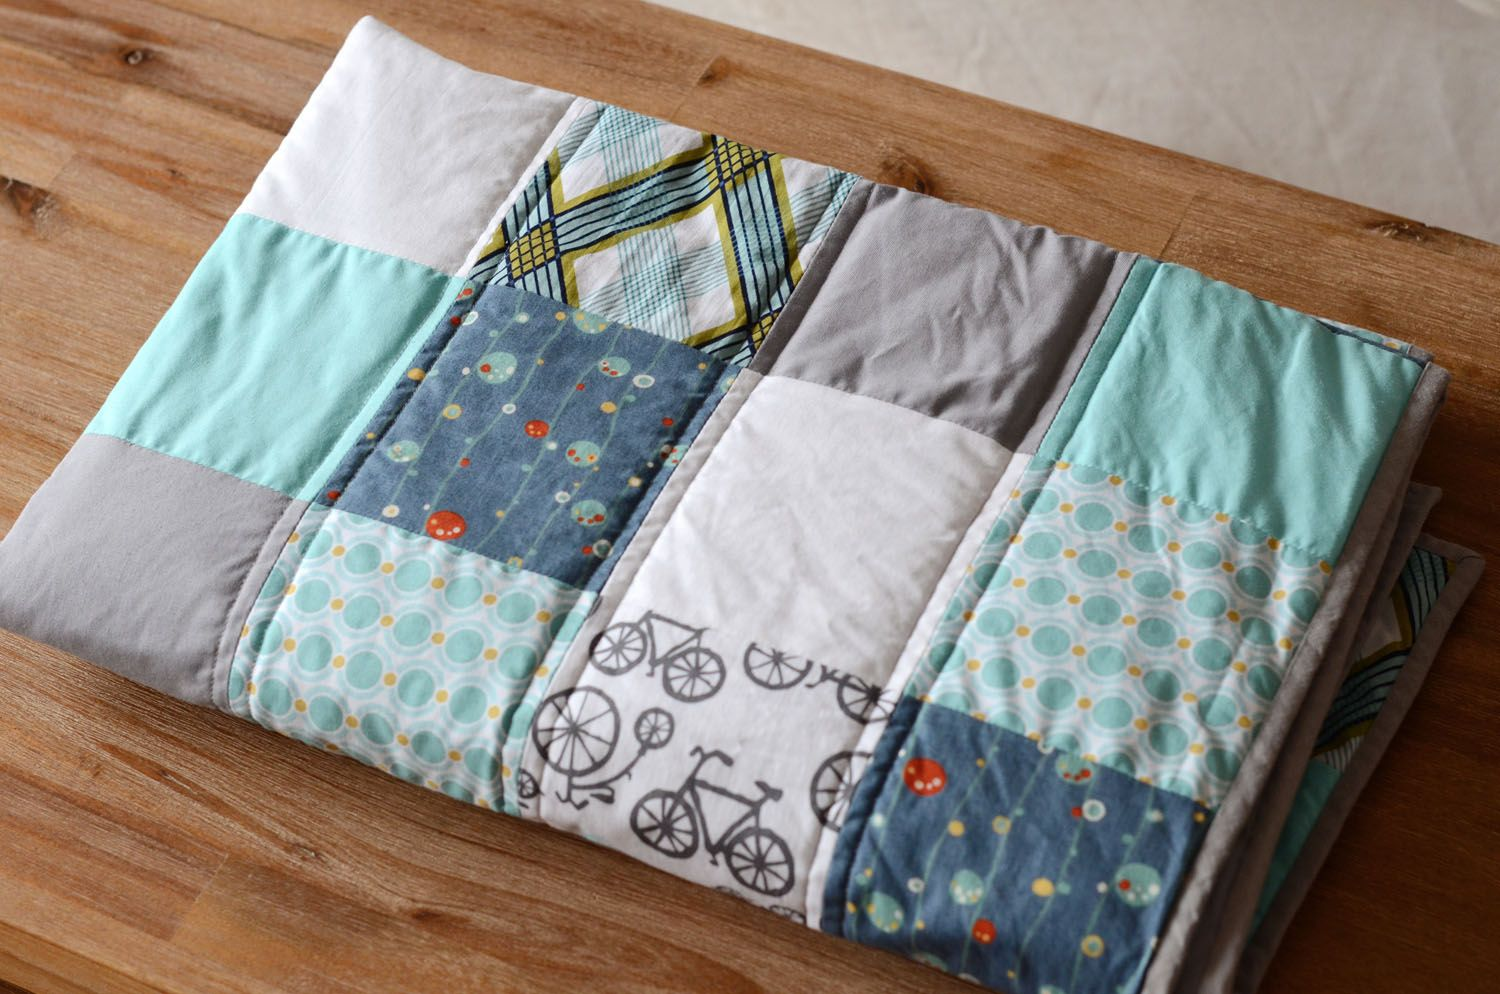 Do You Want To See The Process Of Making A Quilt Here Is A Step By